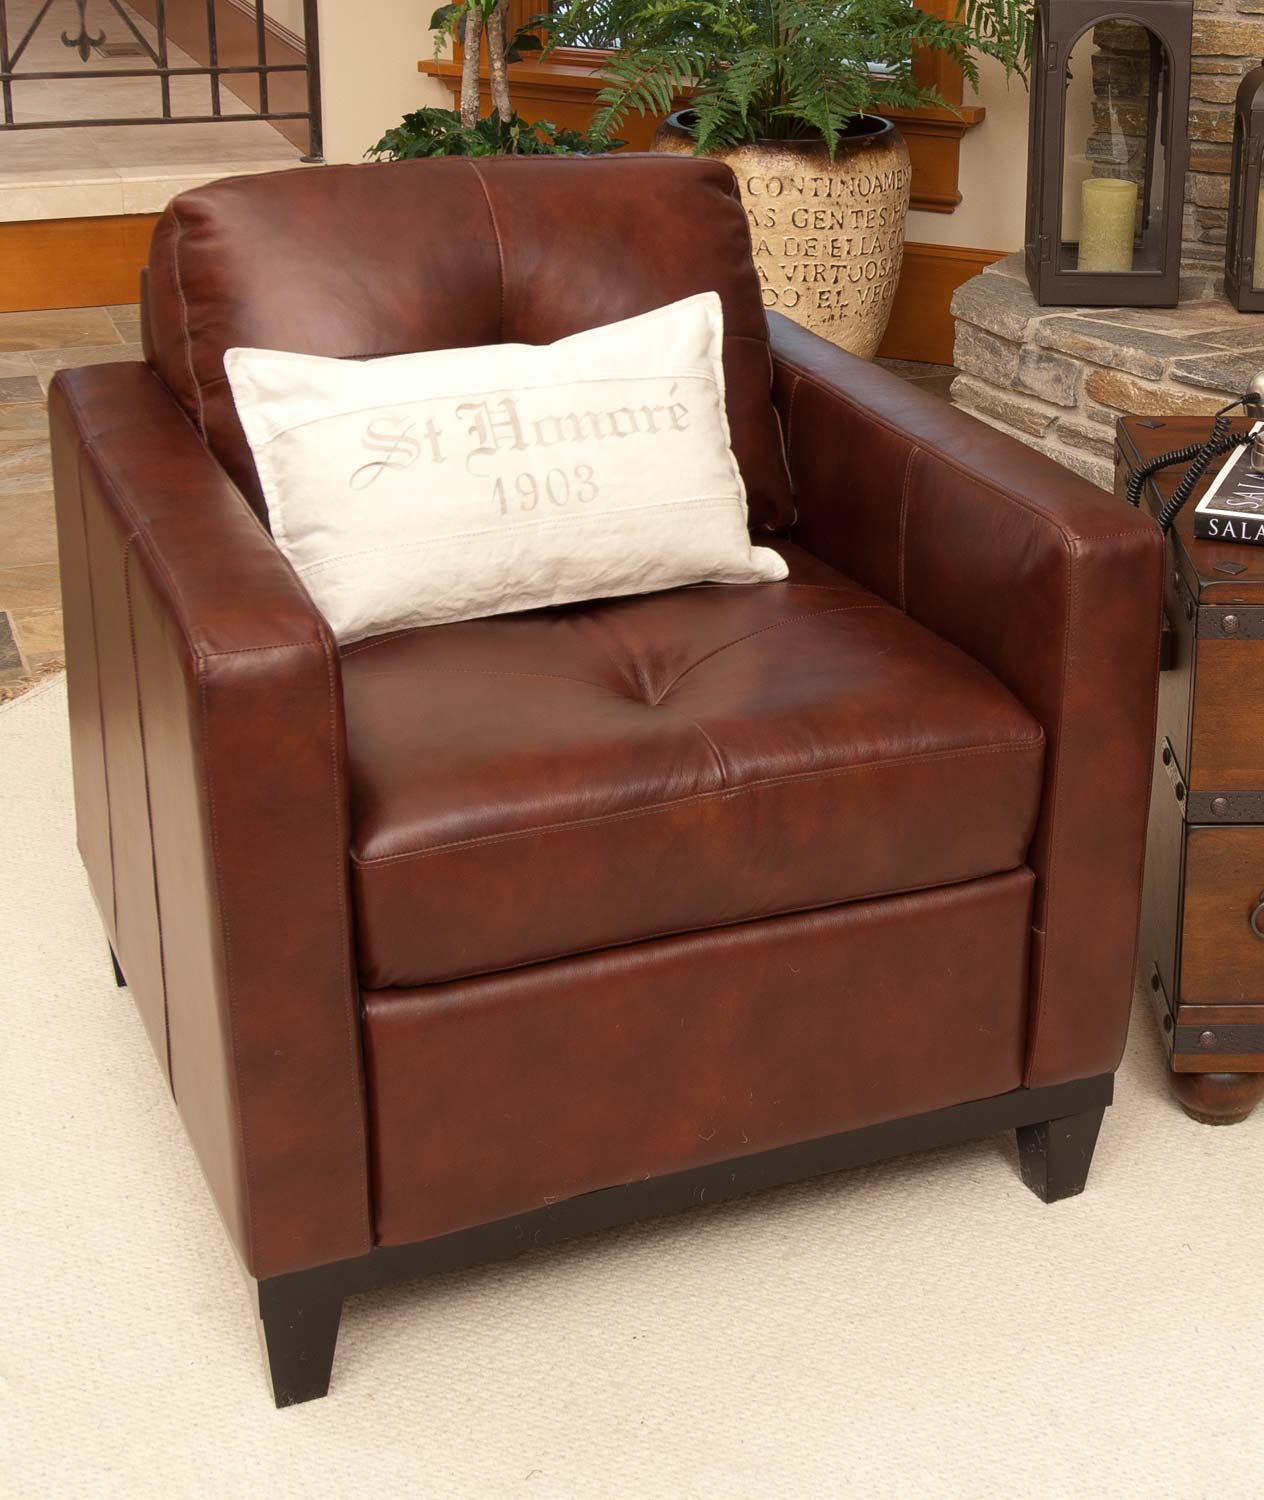 ELEMENTS Fine Home Furnishings Carlton Top Grain Leather Accent Chair - Raisin